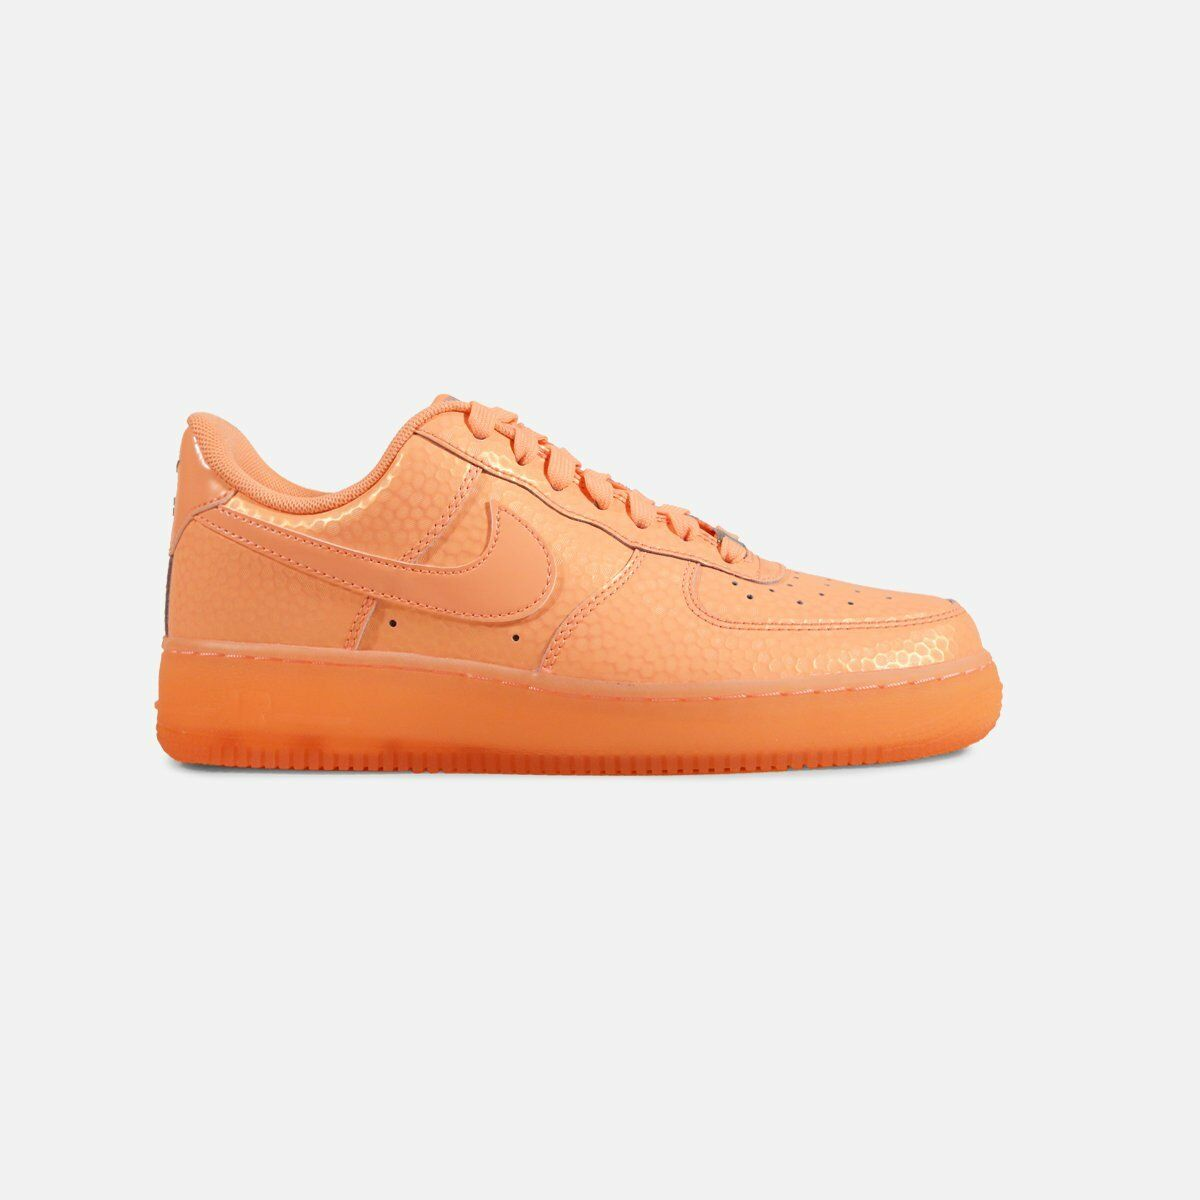 Nike air force 1 07 premio moda donne scarpe sunset glow 616725-800